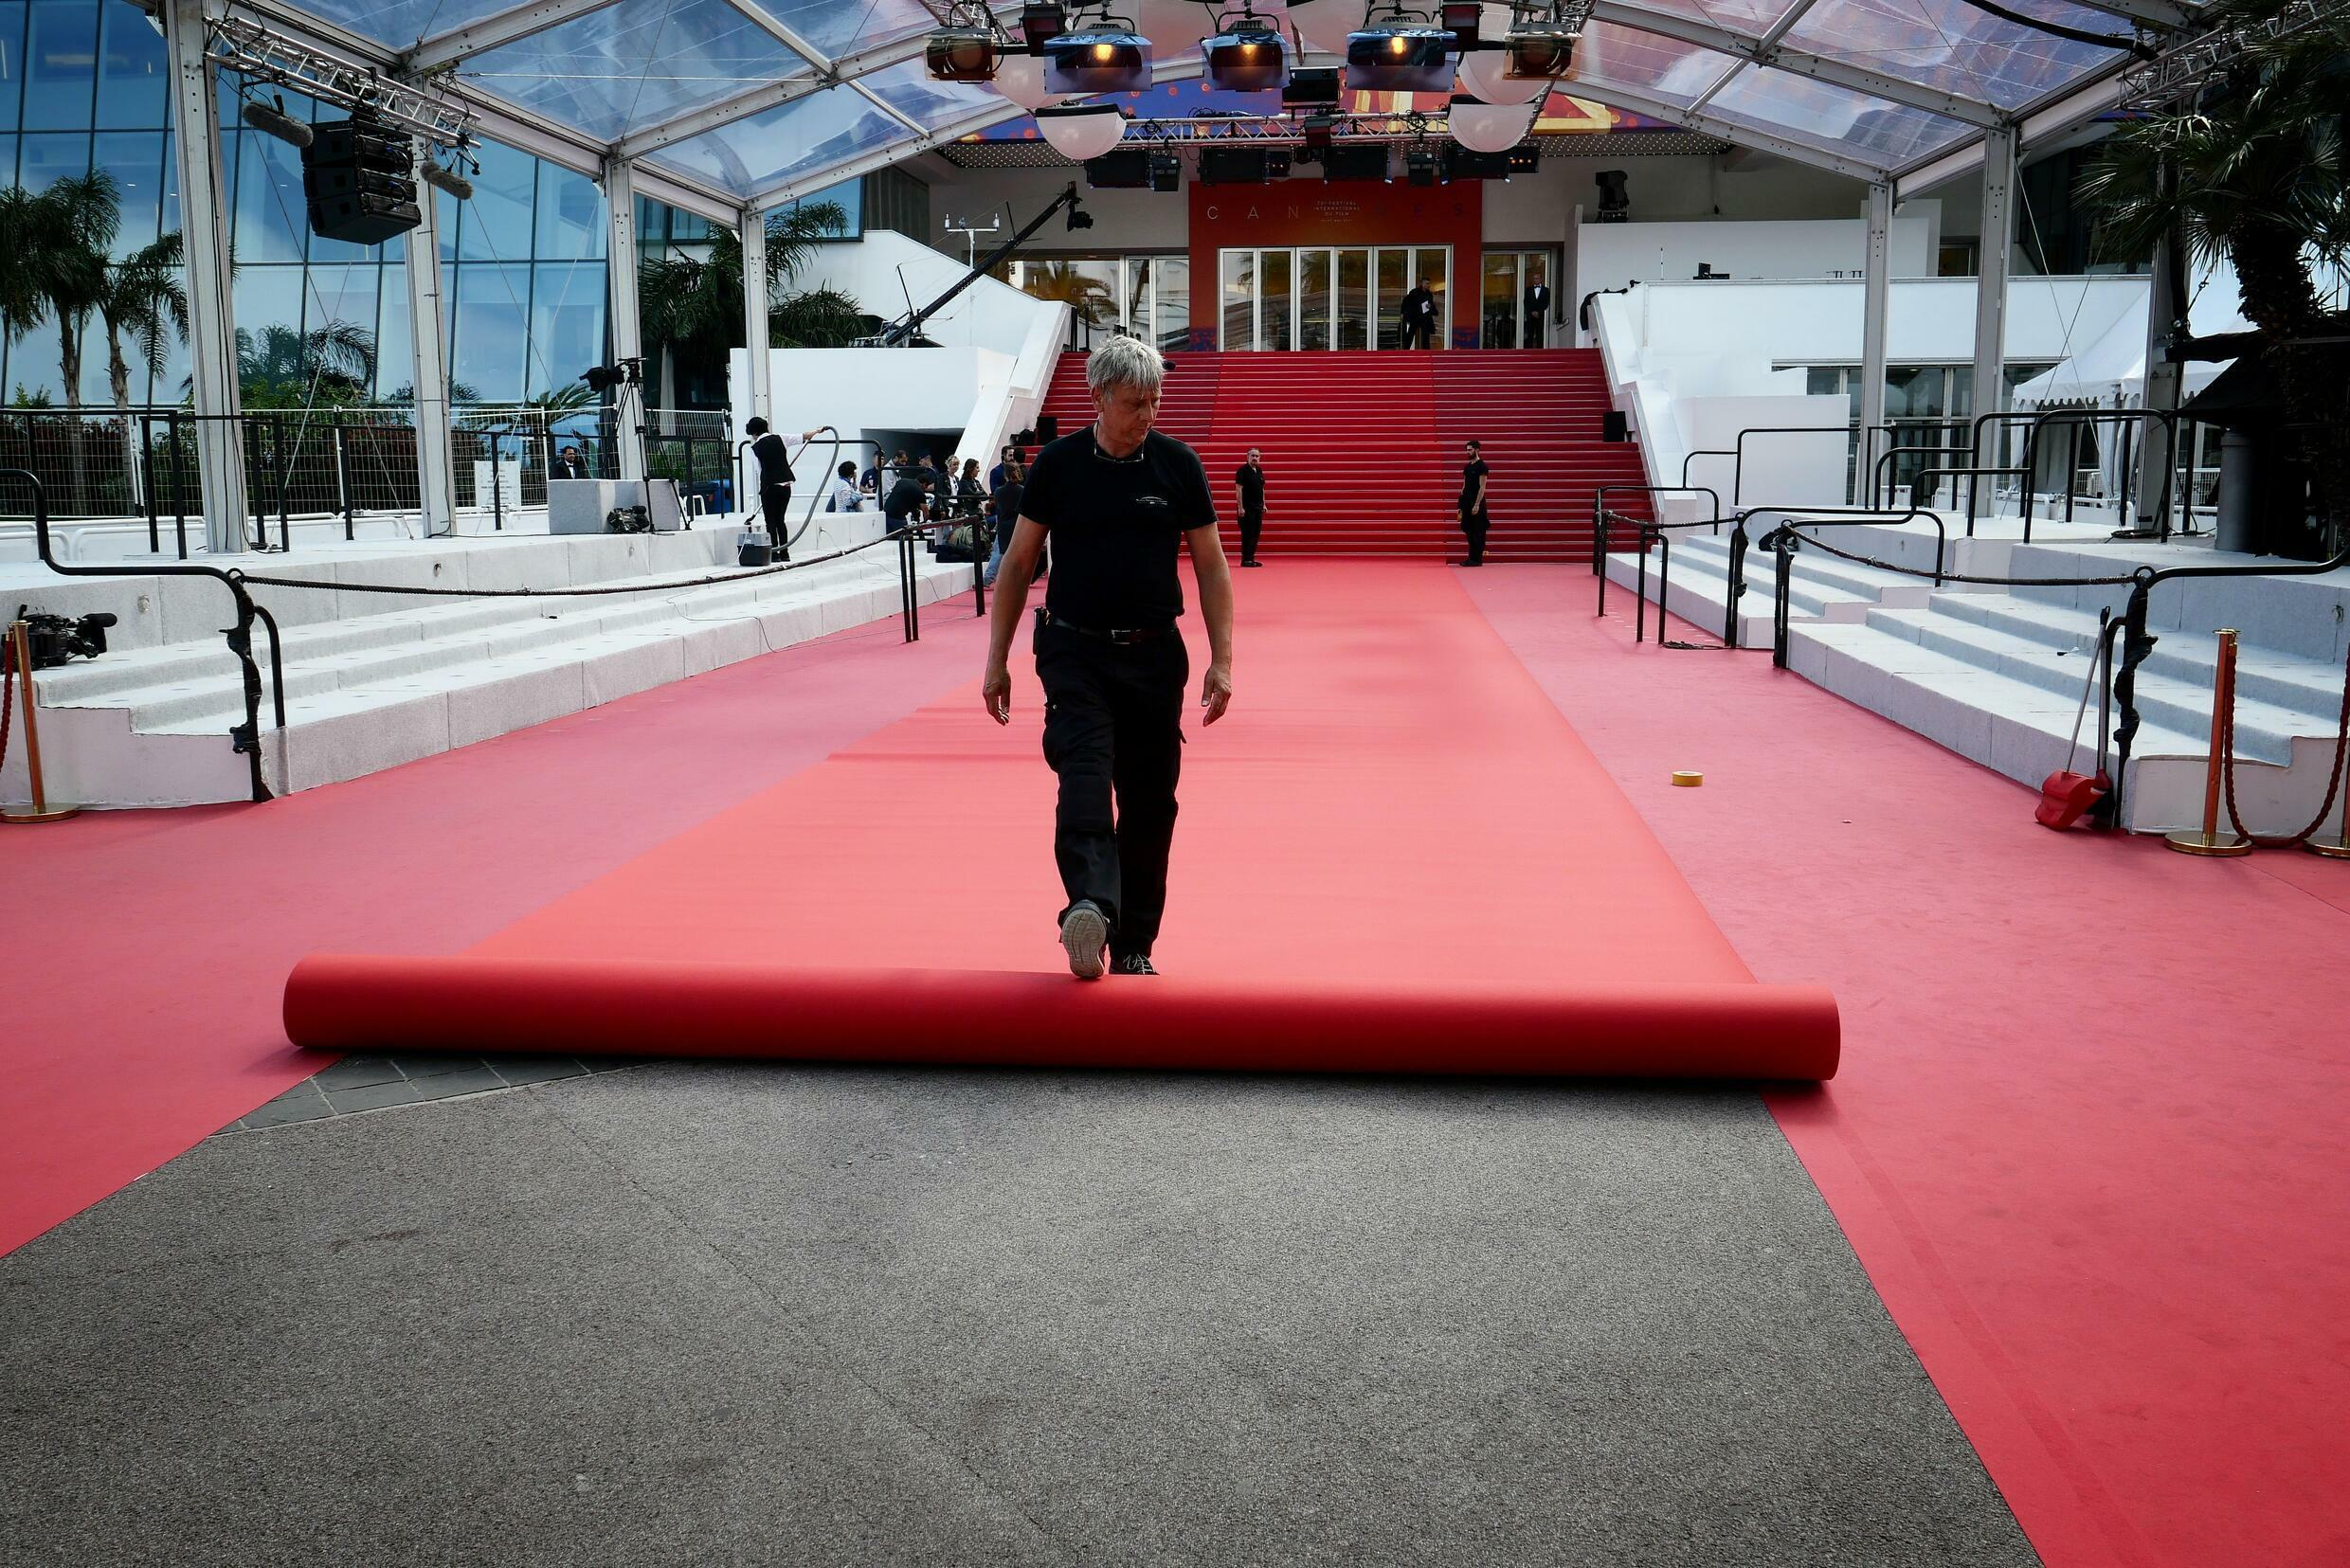 As part of the festival's efforts to go green, this year's Cannes red carpet will be half the size of that last seen in 2019